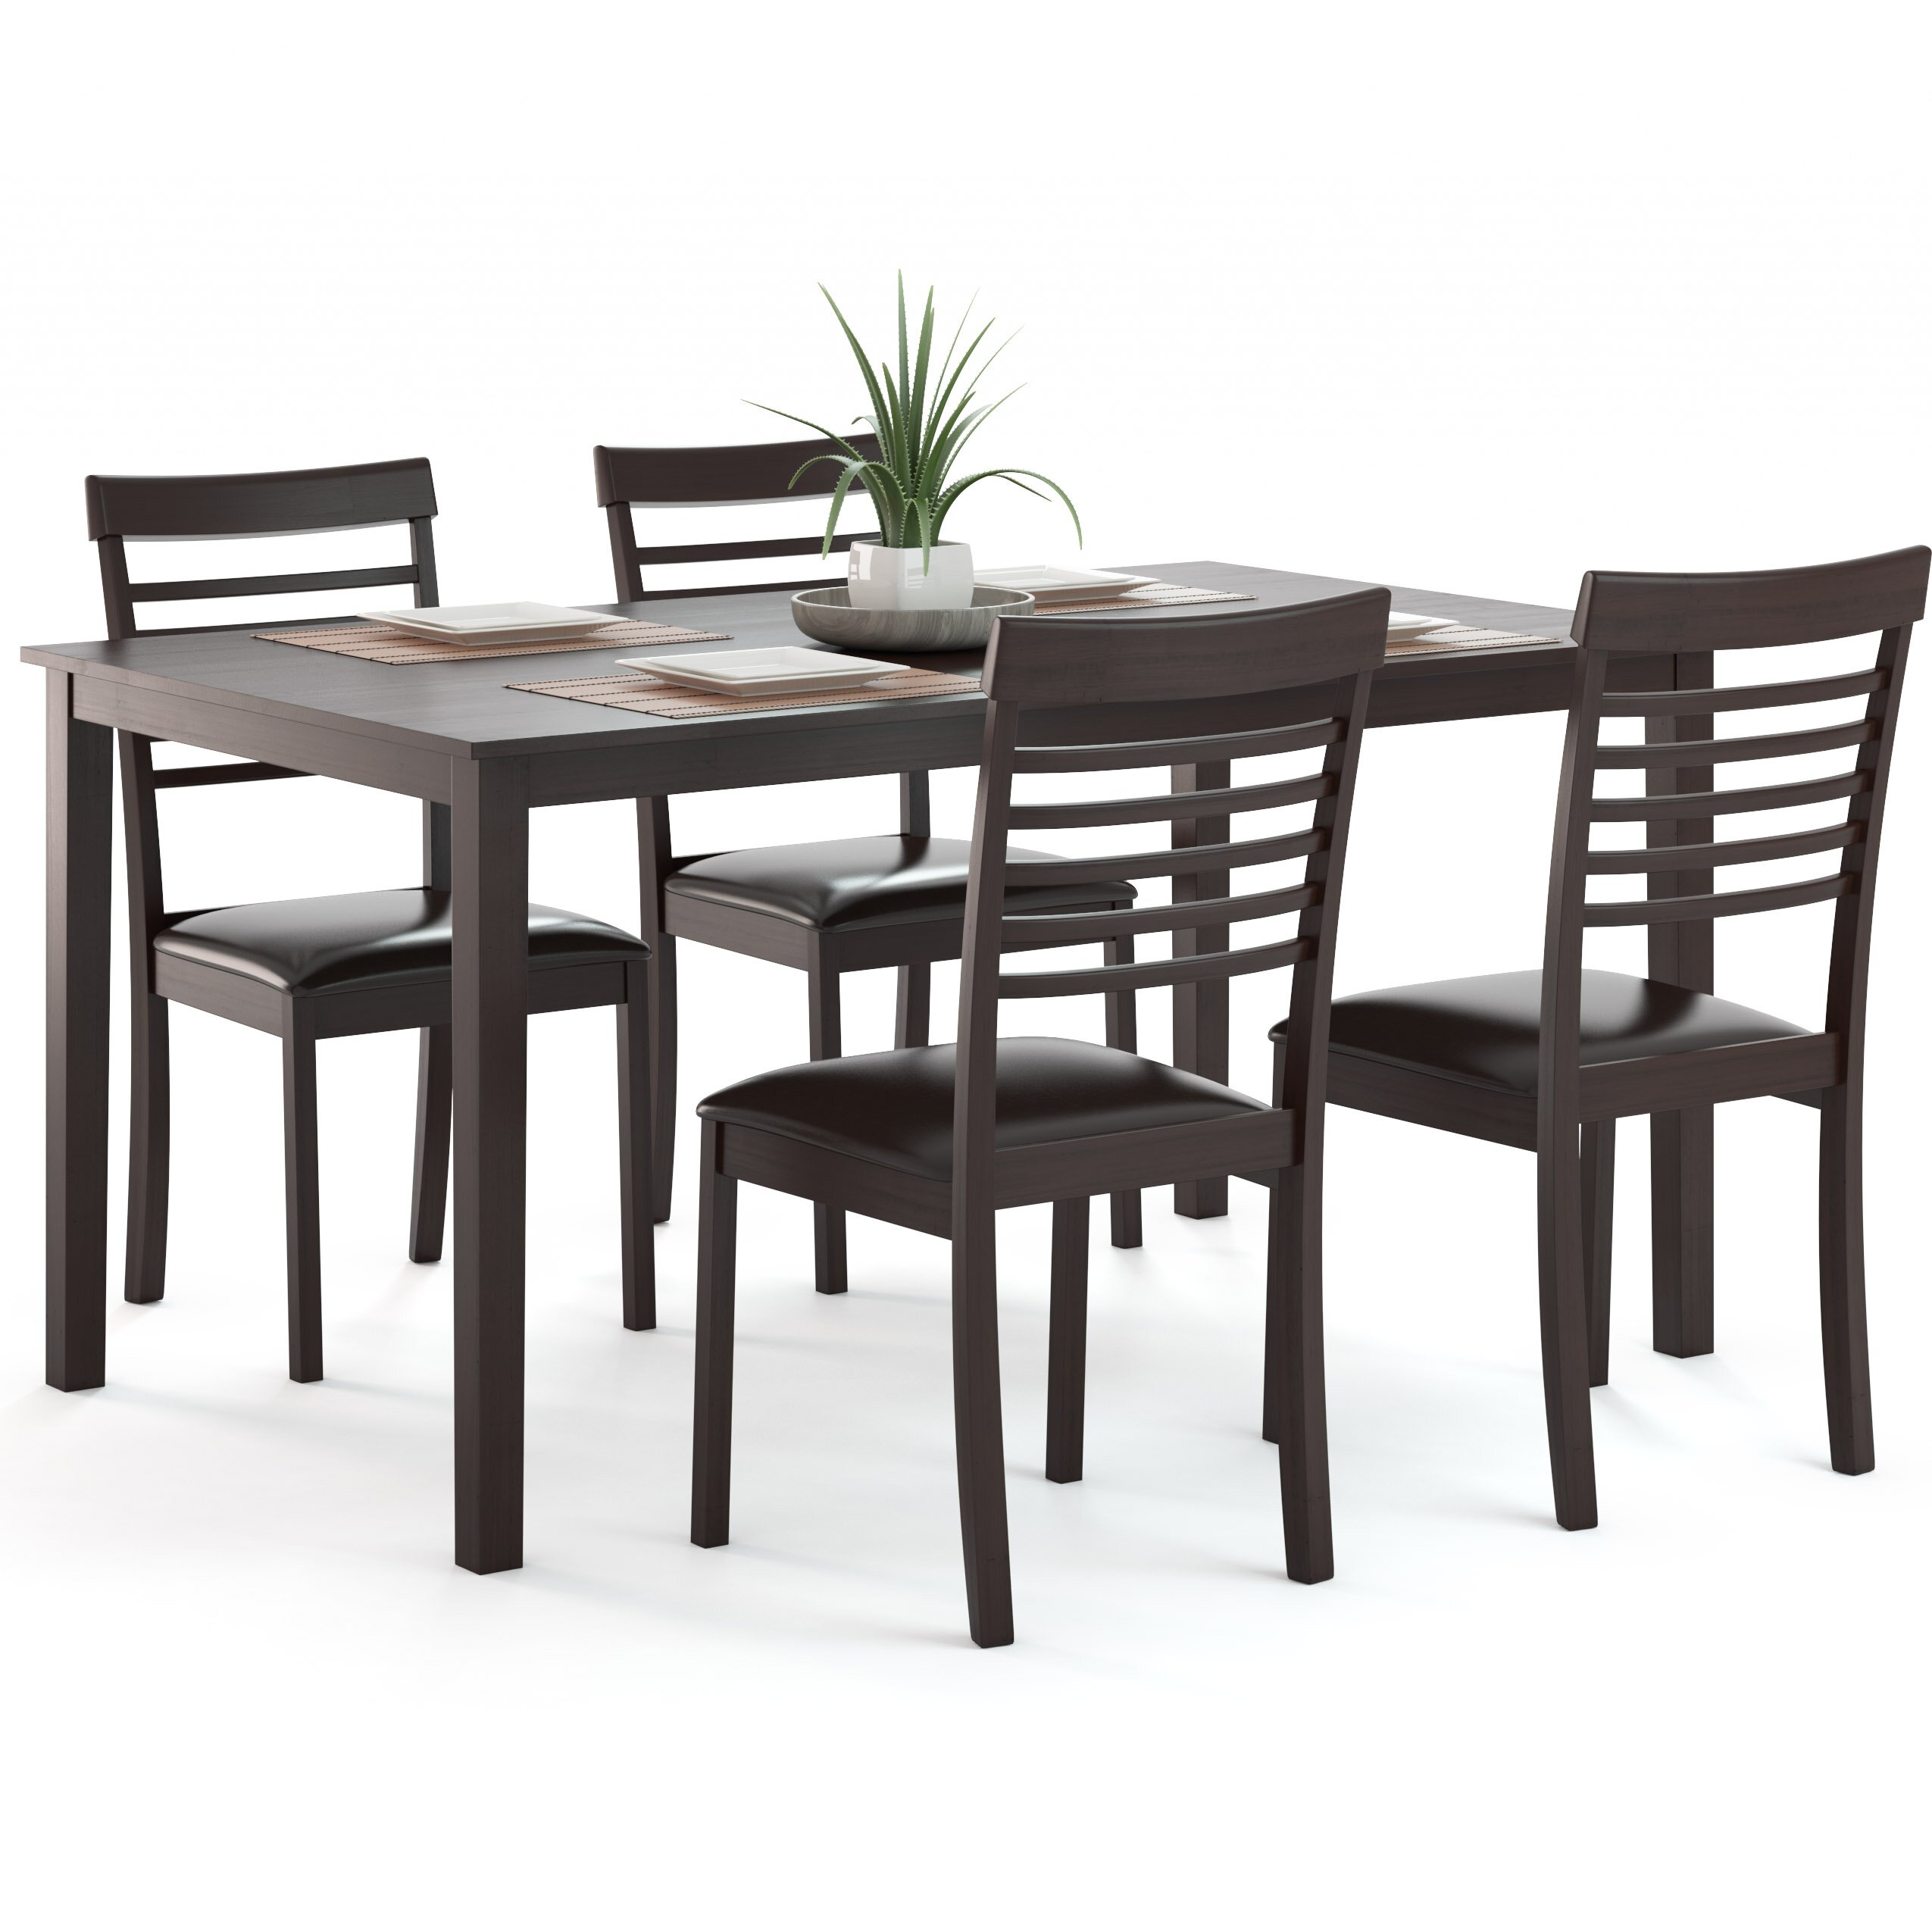 Wayfair Table: CorLiving Dining Table & Reviews